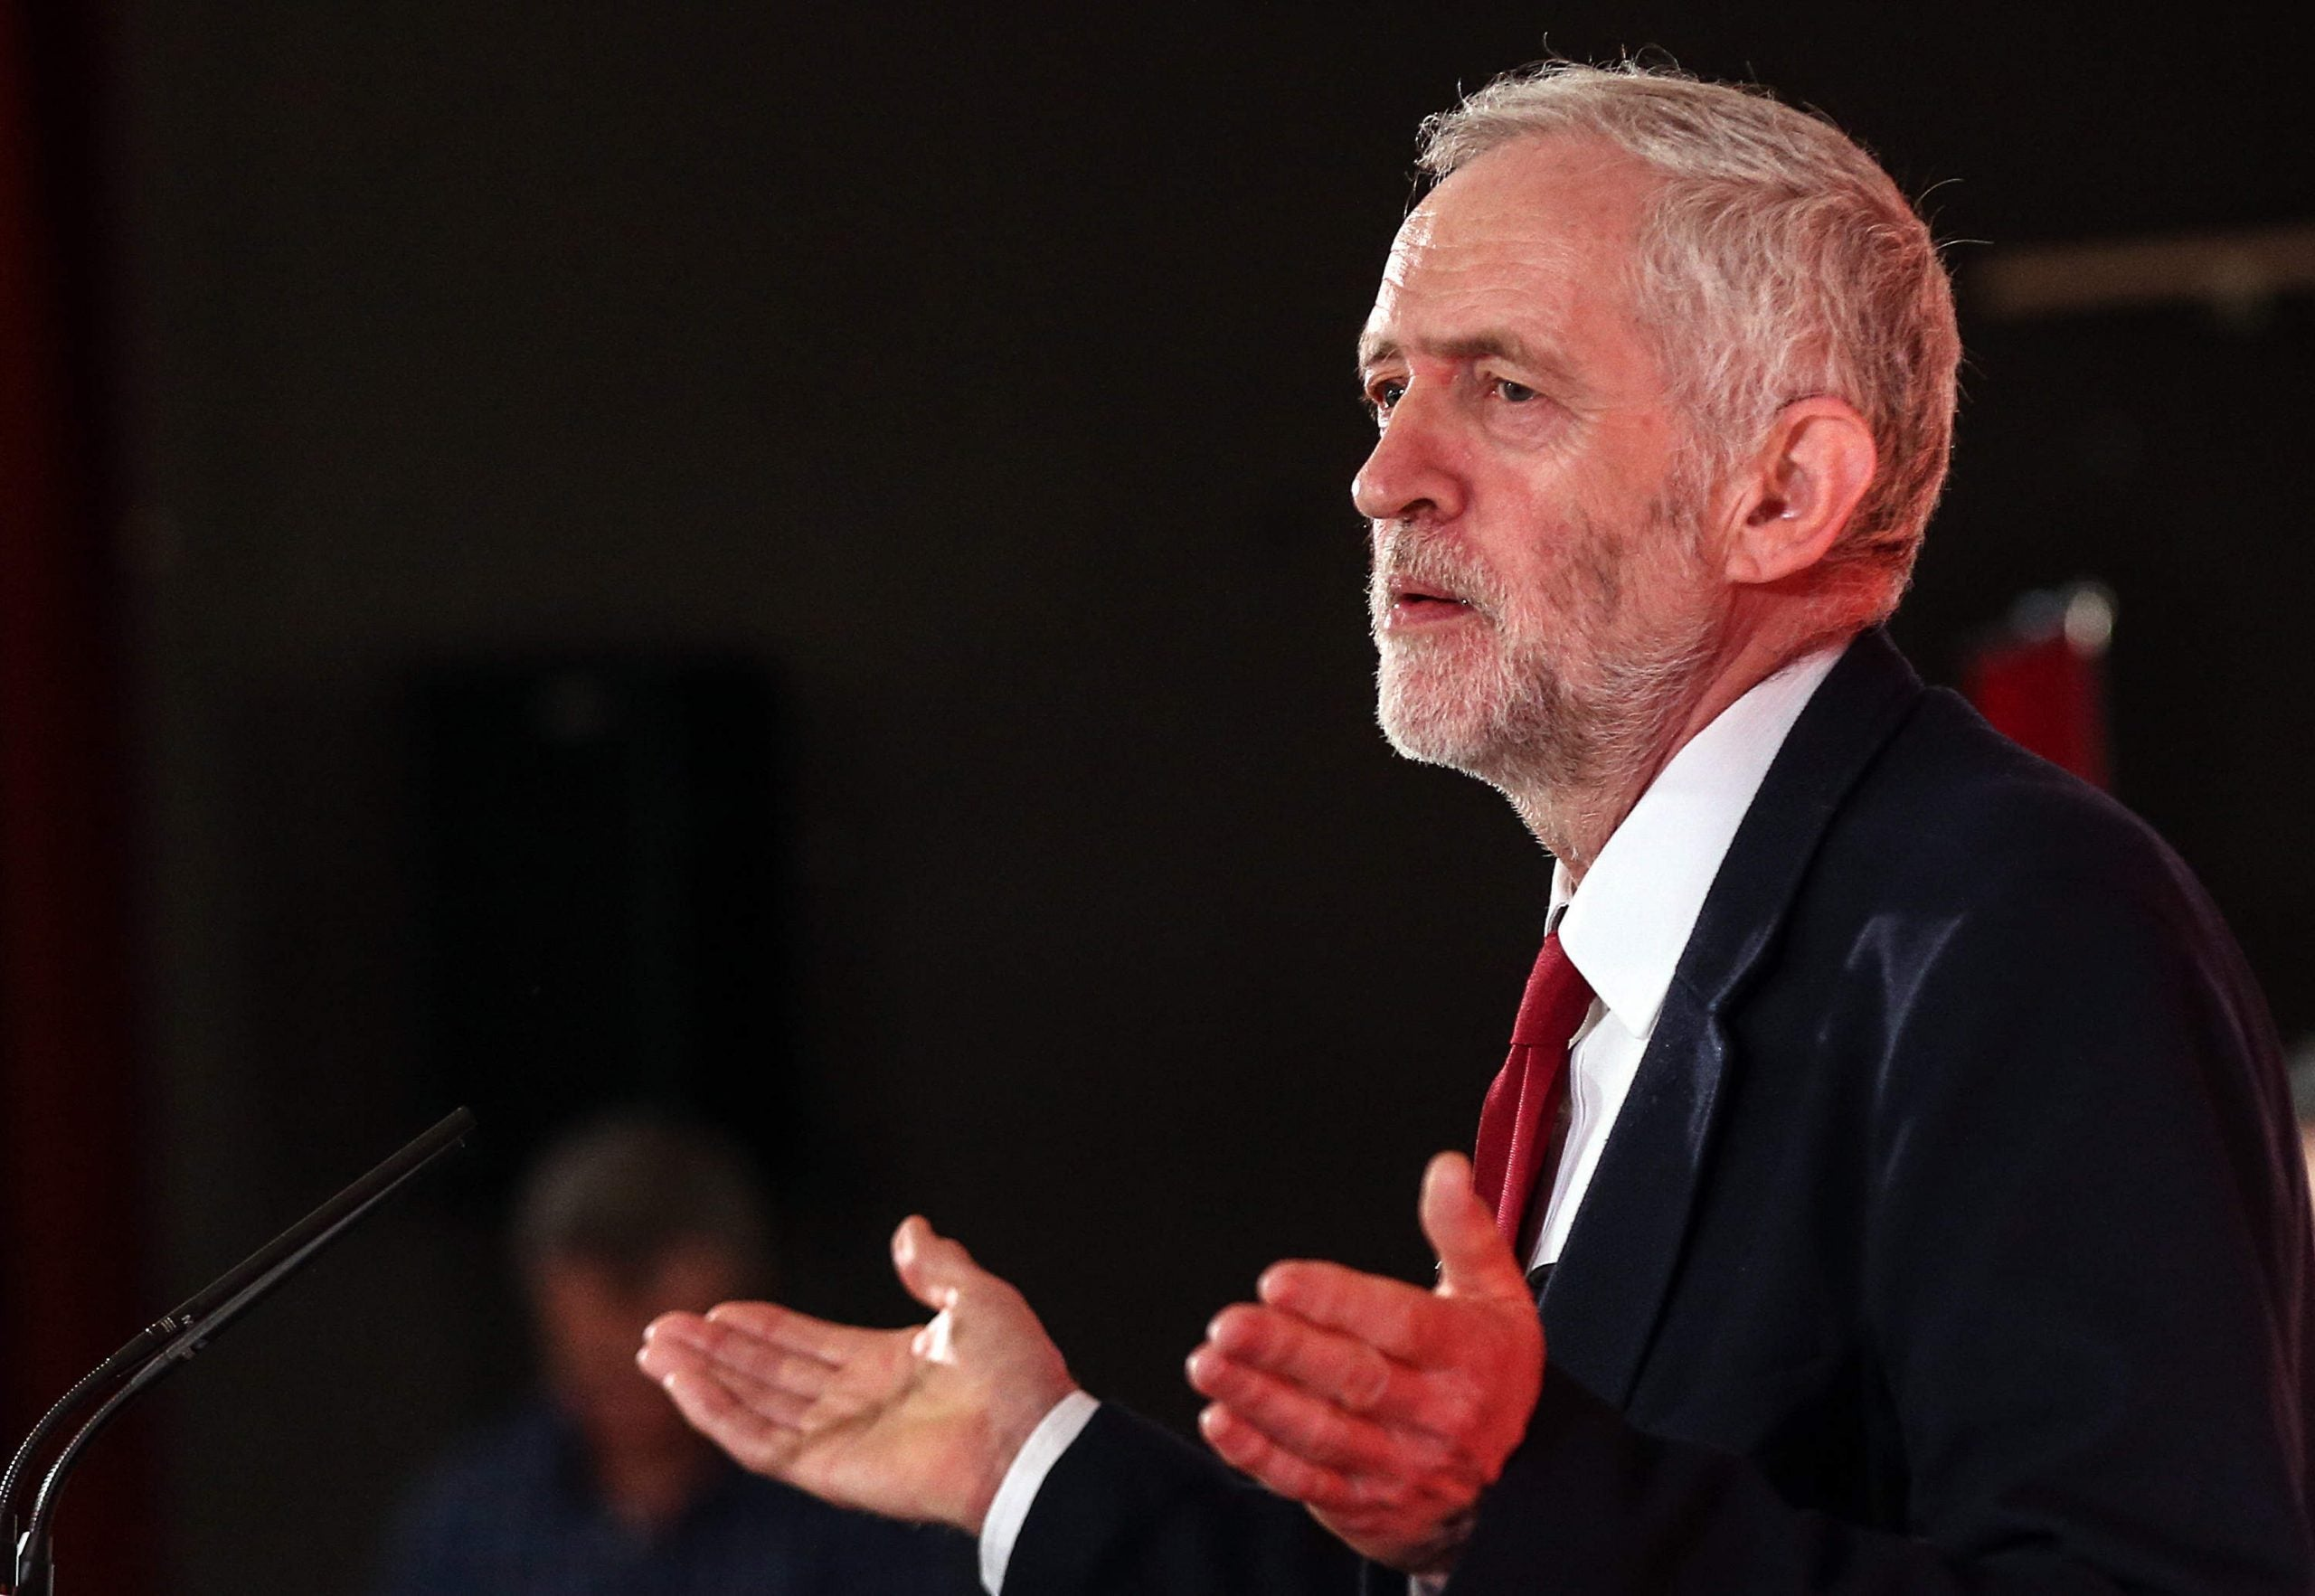 However Labour performs in the elections, Jeremy Corbyn will be leader for as long as he wants